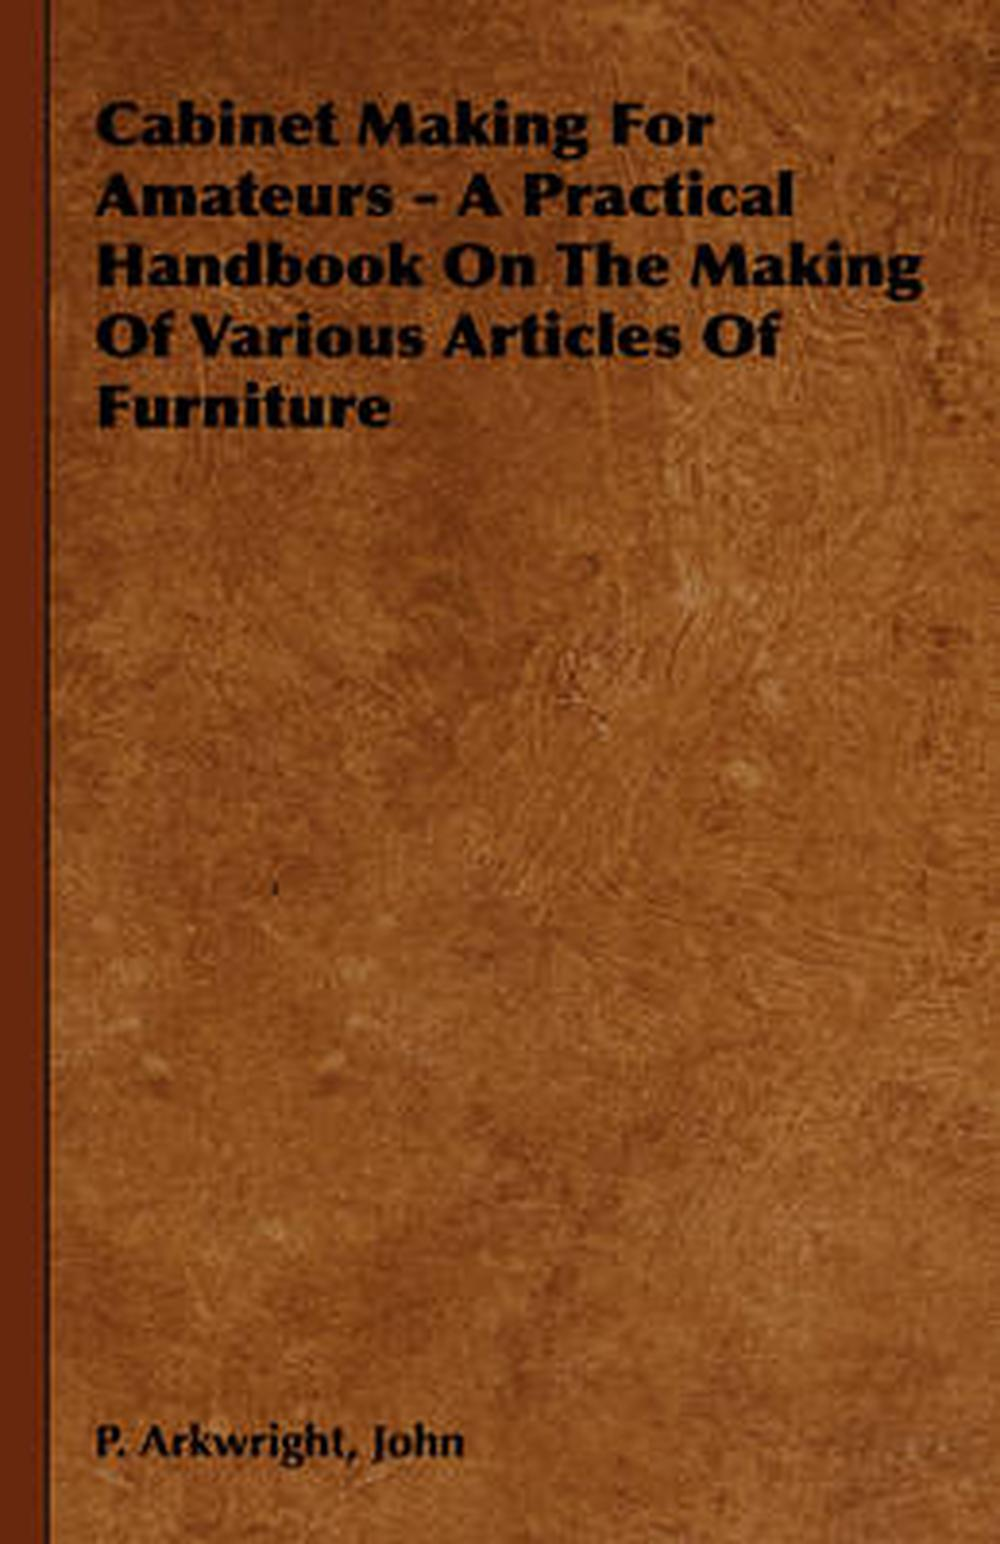 Cabinet-Making-for-Amateurs-A-Practical-Handbook-on-the-Making-of-Various-Arti